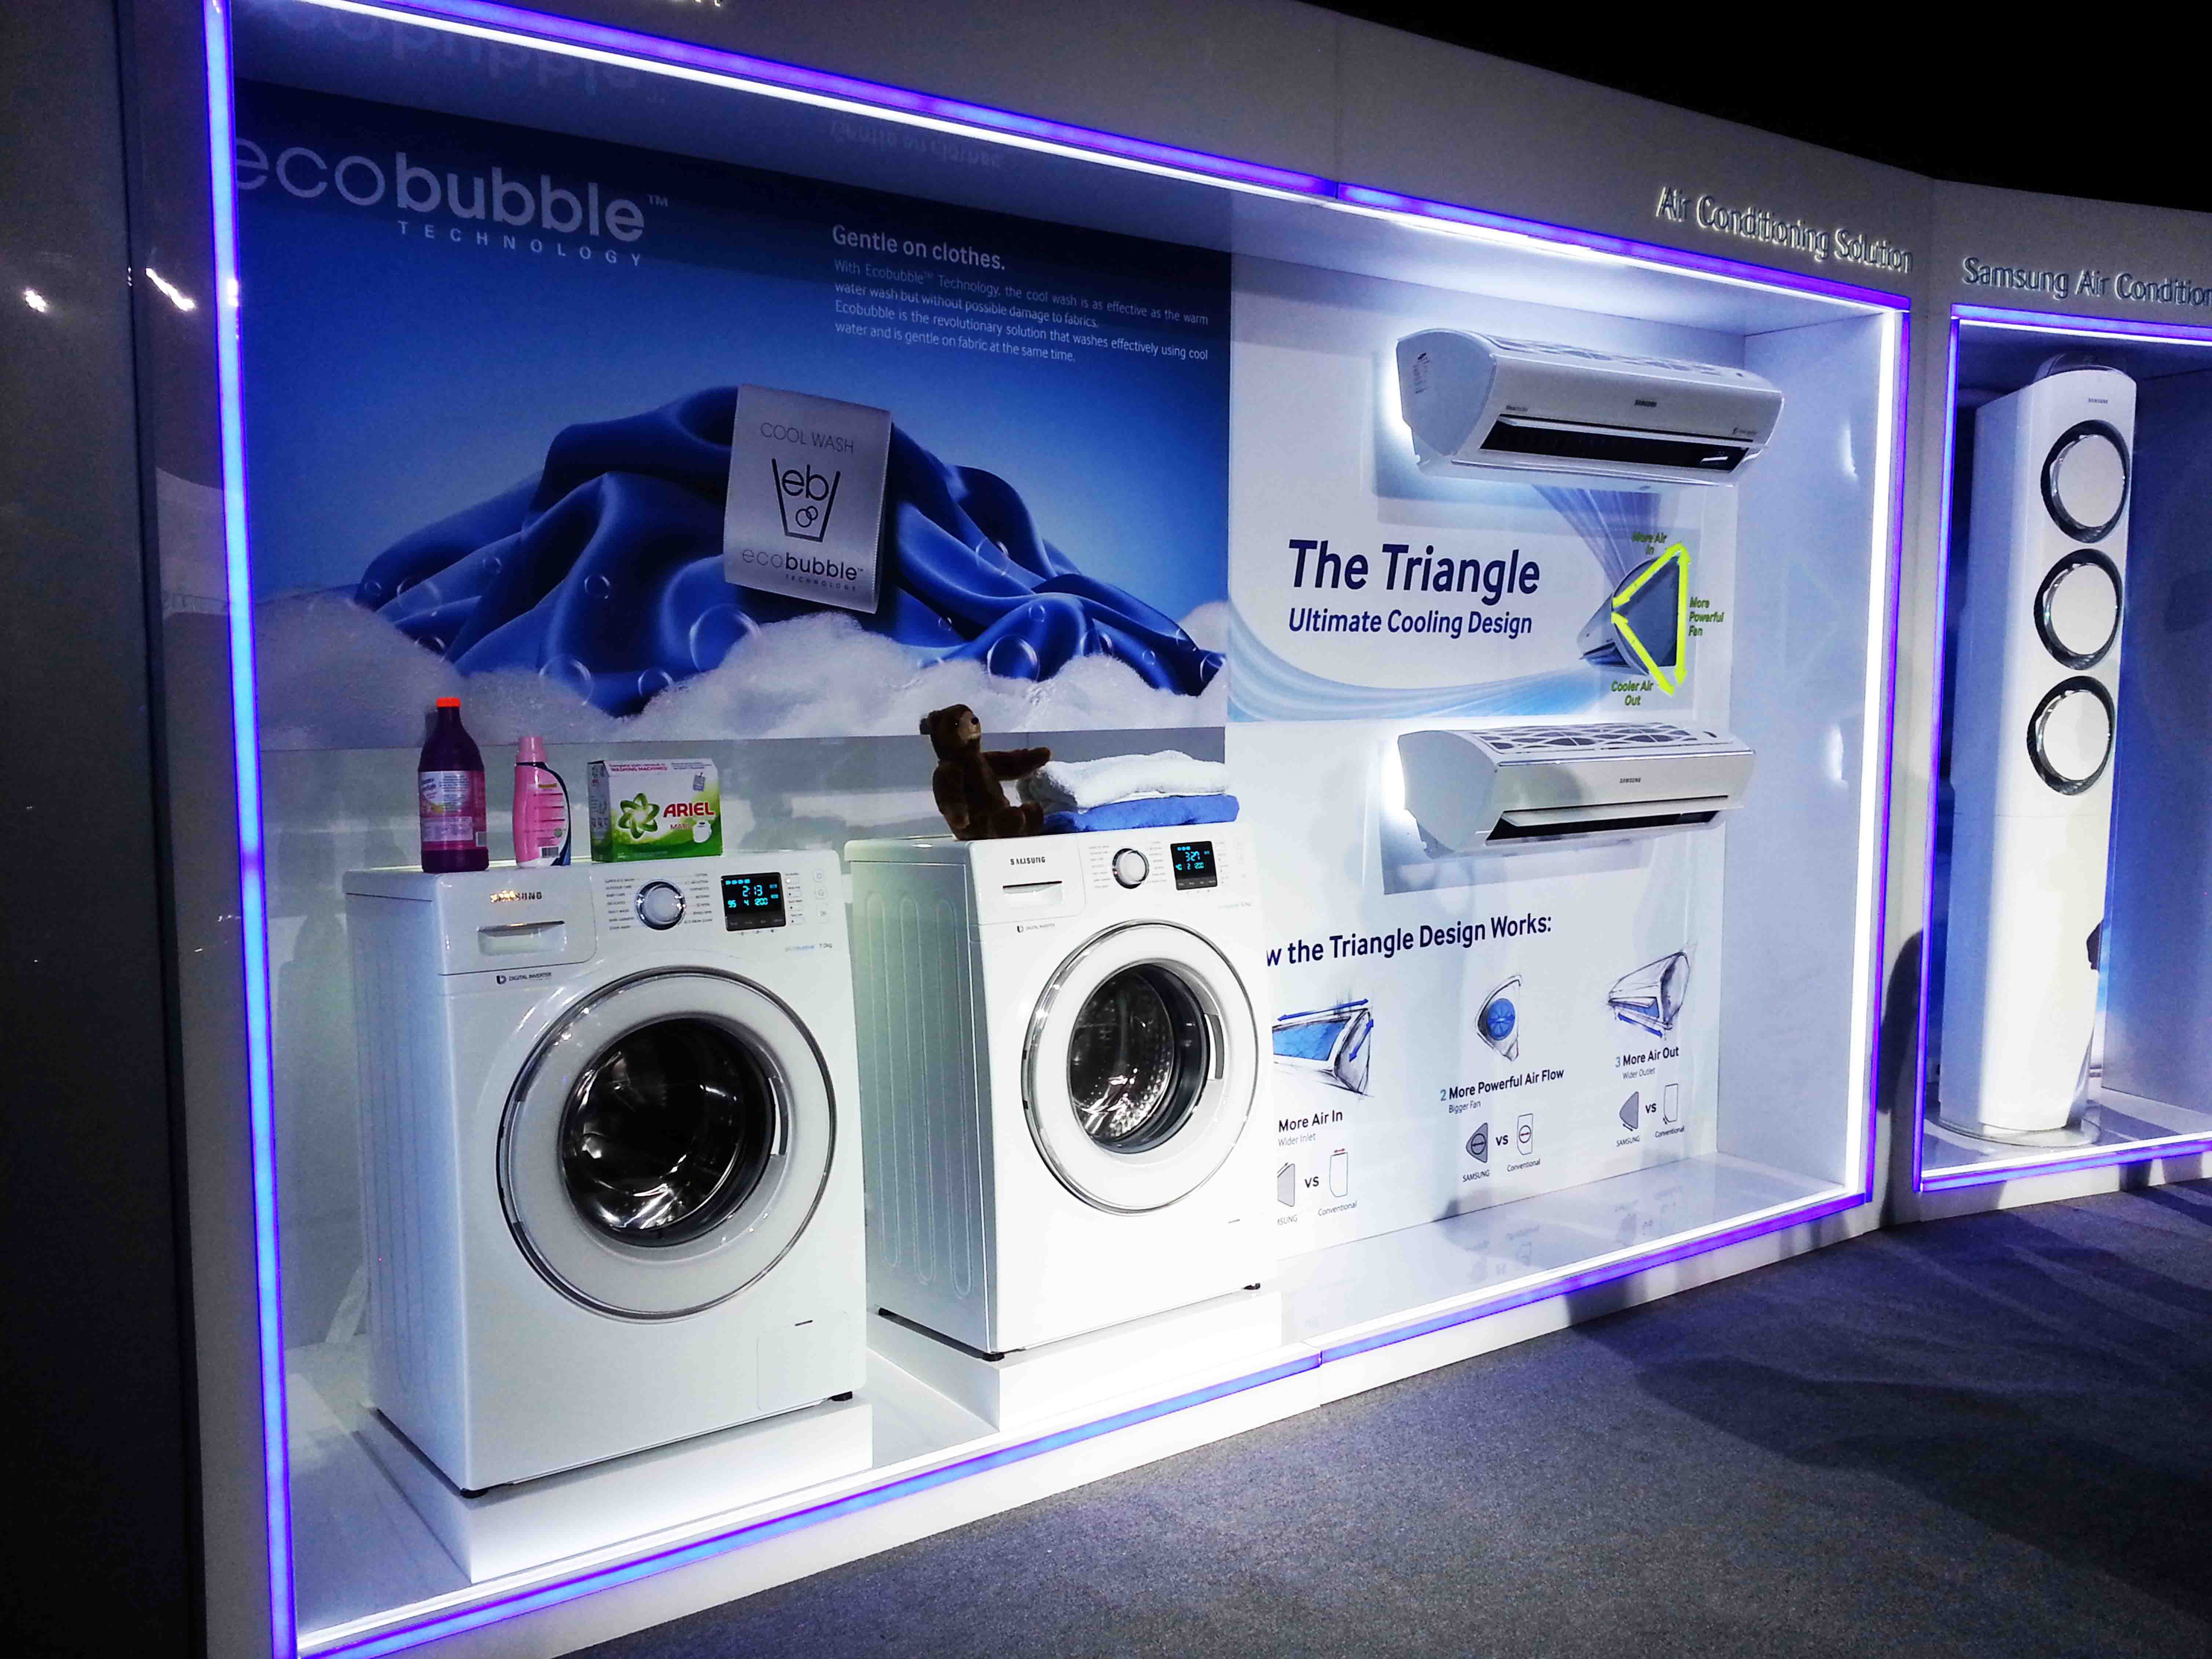 Samsung Launches New Generation Of Digital Appliances